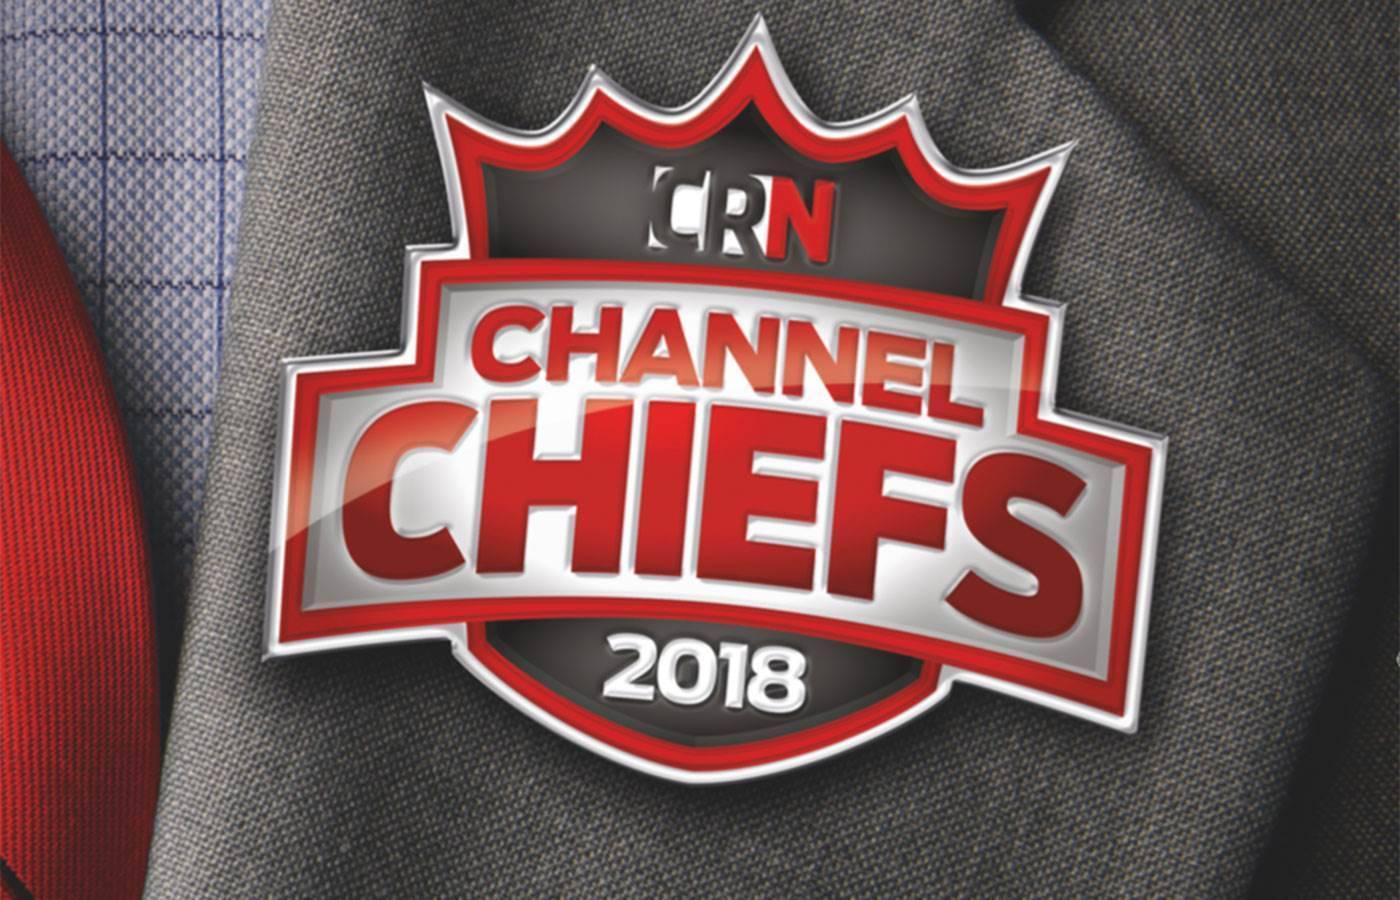 The 2018 Crn Channel Chiefs Cloud Hardware Security Services